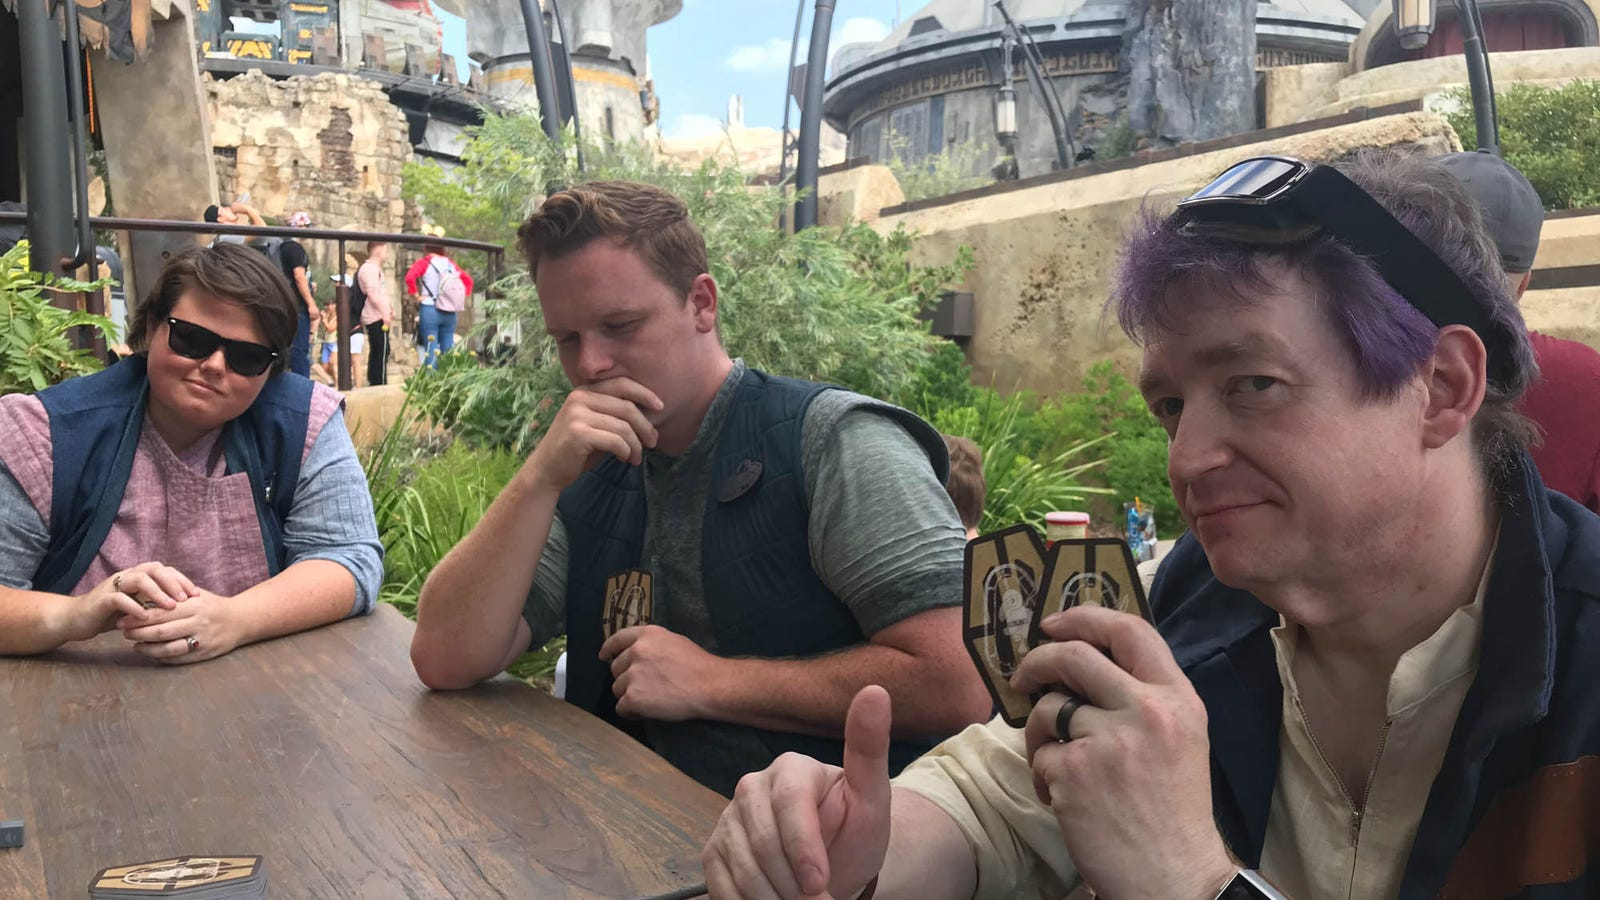 Three Months Of Prep Made Our Star Wars: Galaxy's Edge Trip Amazing